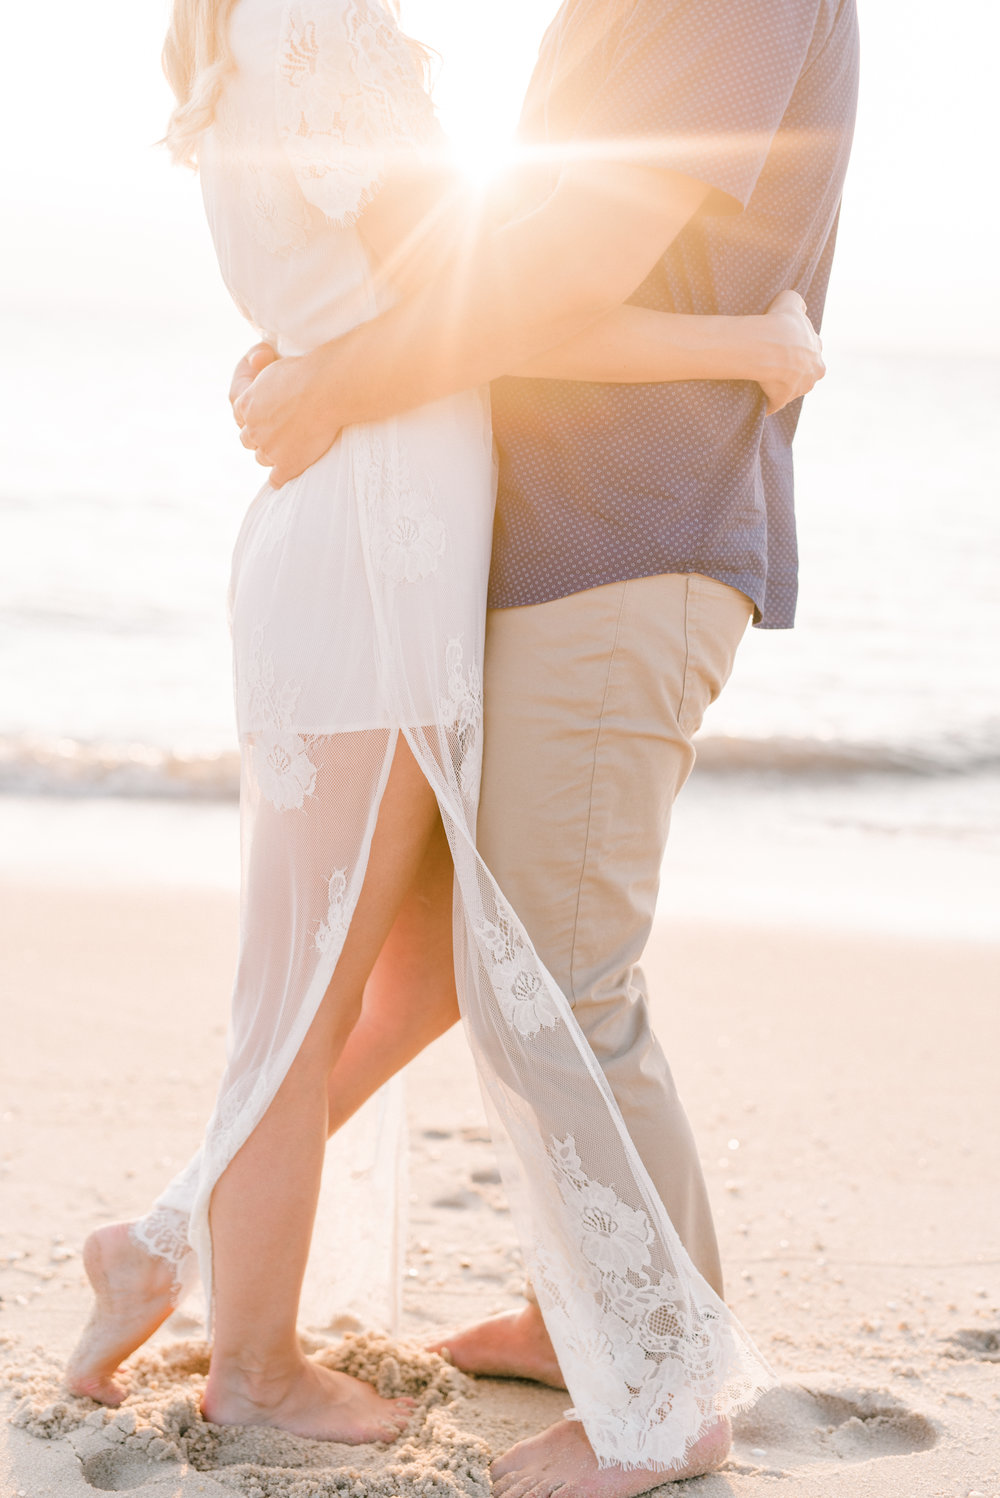 cape-may-beach-engagement-photos-haley-richter-photography-045.jpg